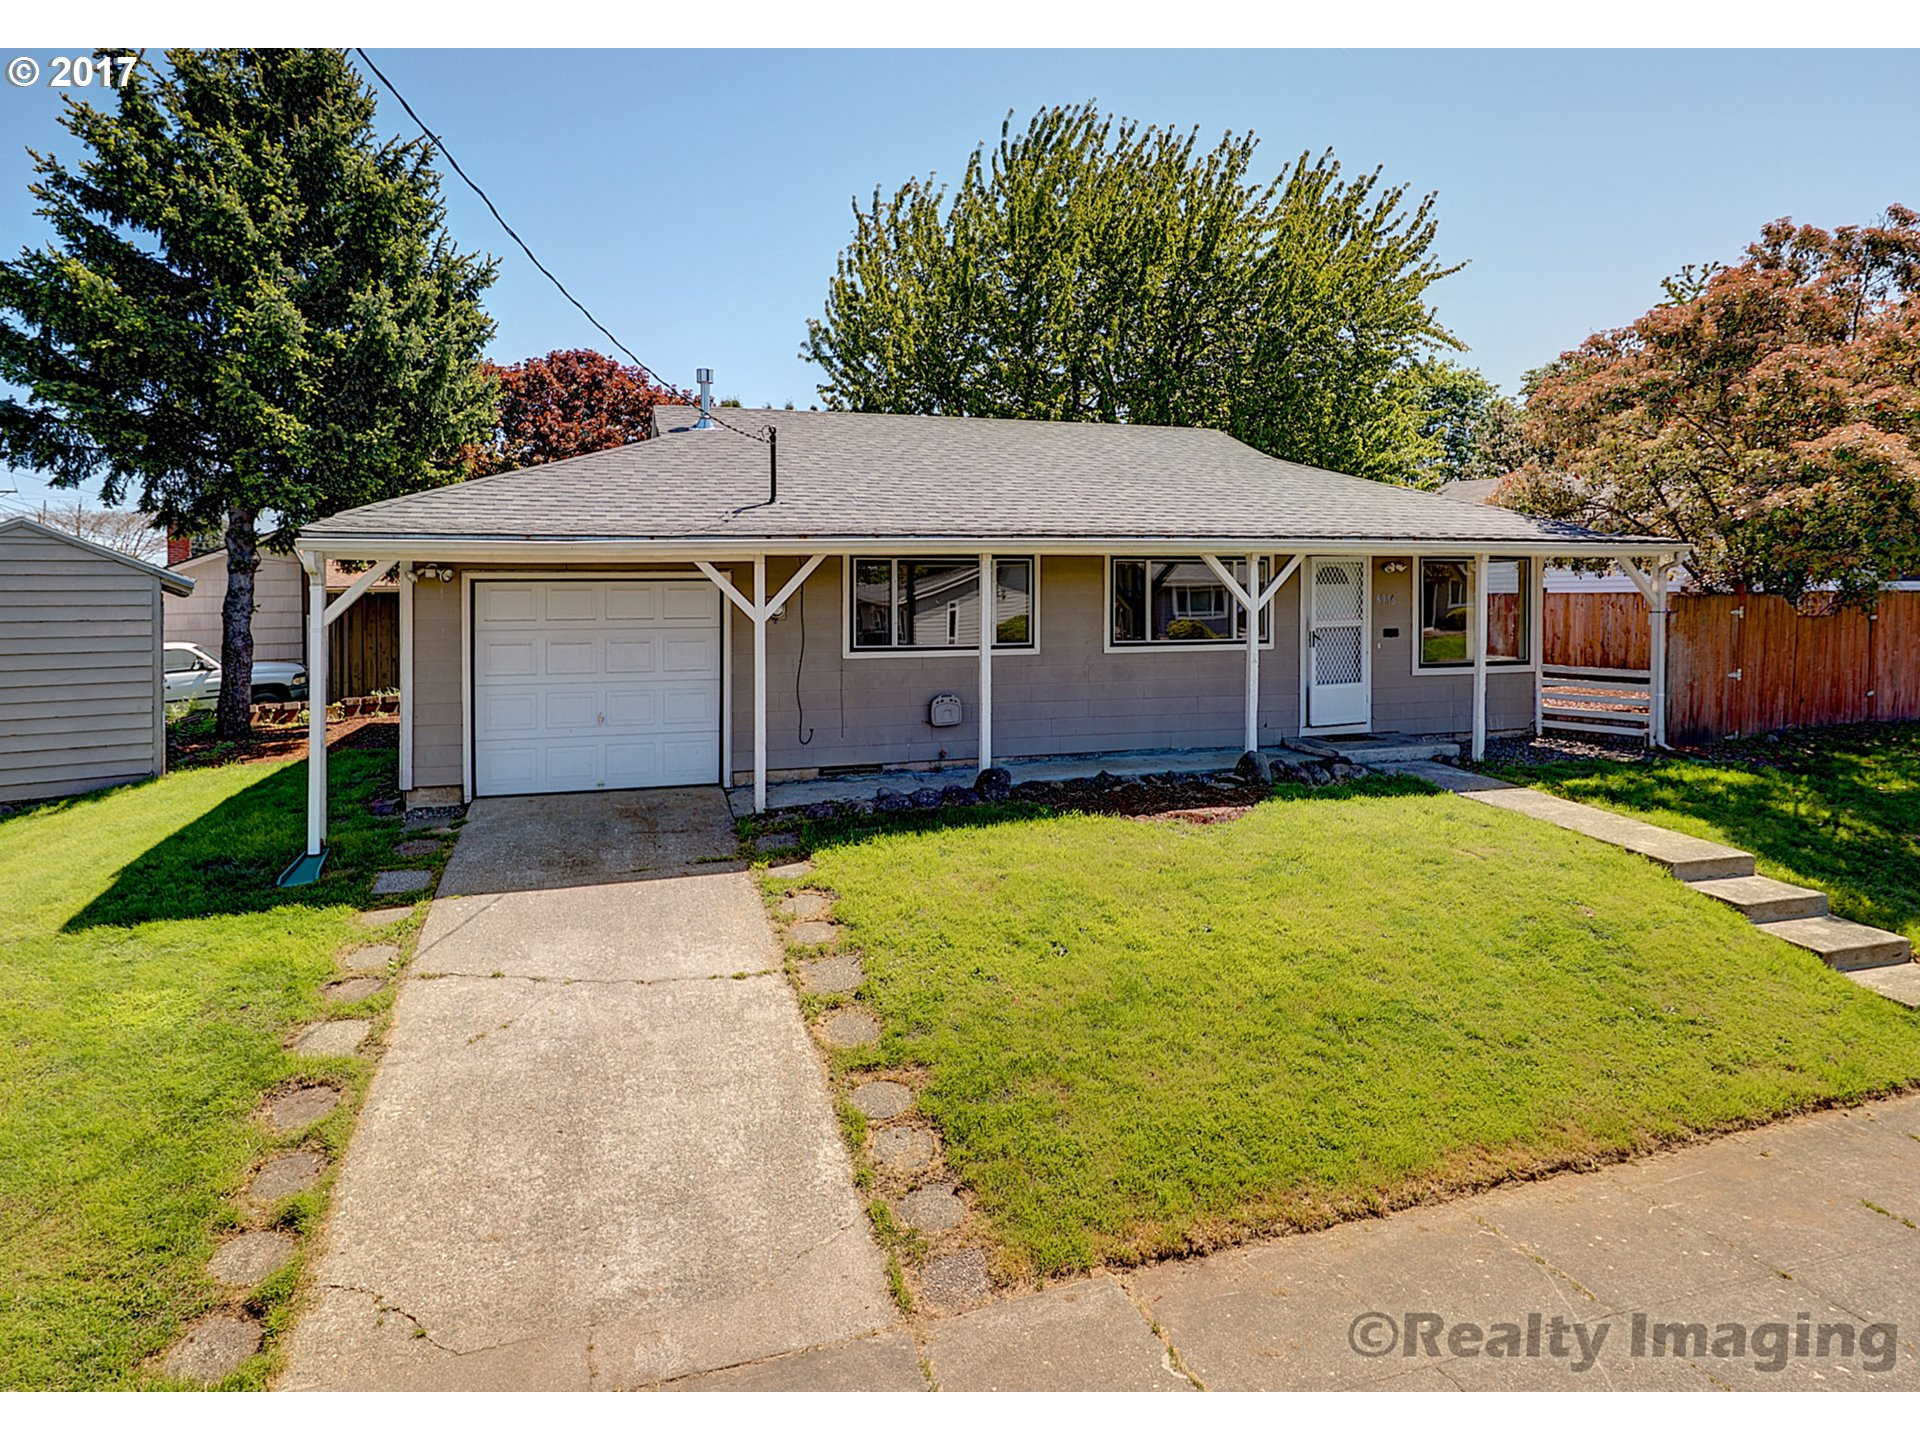 Move into this one level home located on a corner lot just minutes to New Seasons & Starbucks. Brand new roof, furnace and hot water heater. New kitchen appliances. Remodeled bathroom.    Attached single car garage. Fully fenced back yard. Tool shed for additional storage. Just blocks away to the brand new Roosevelt High School!